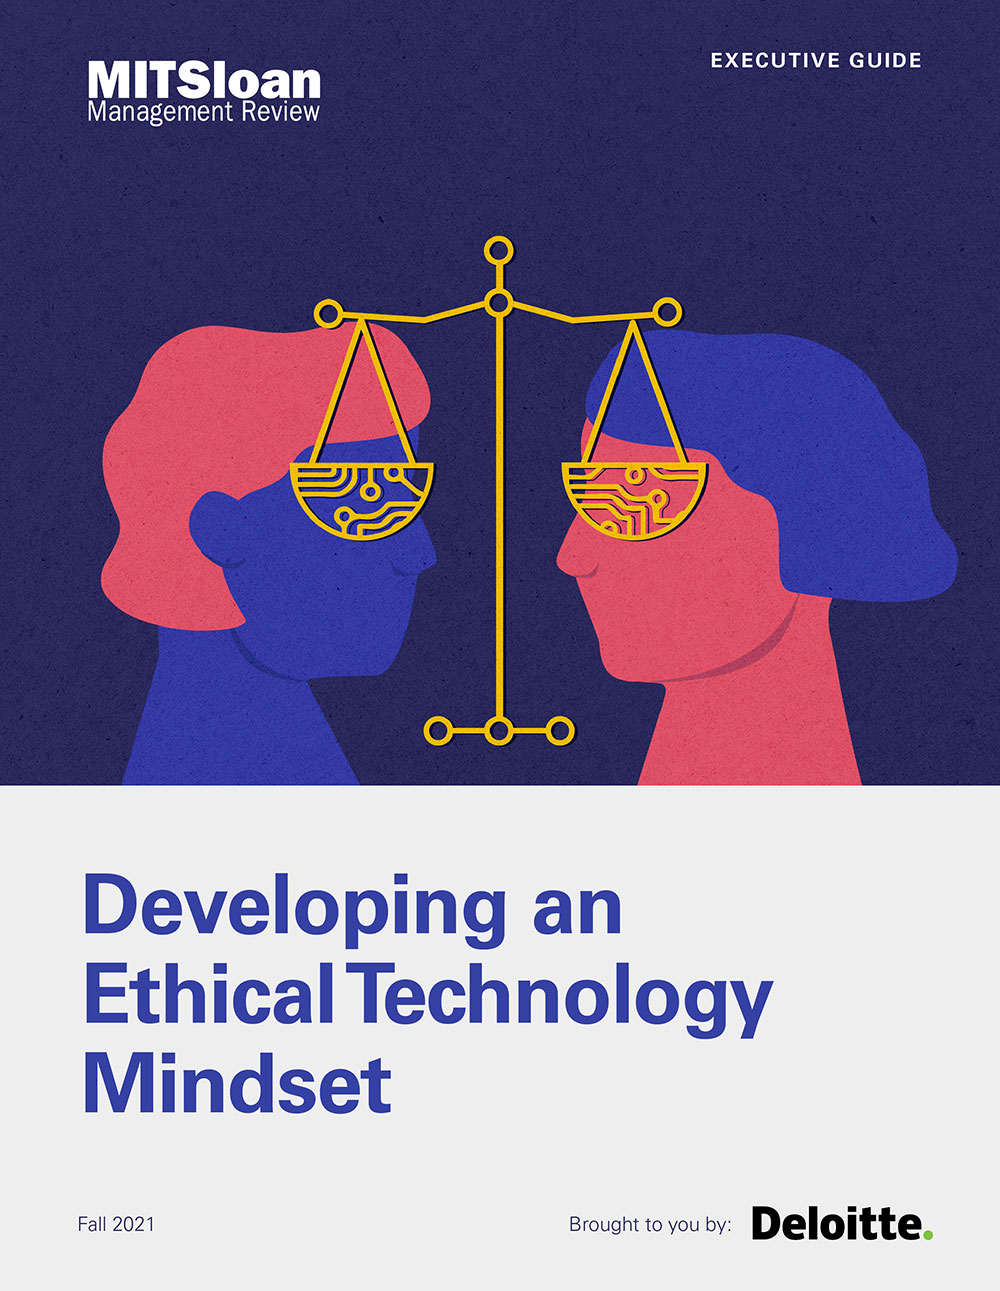 Developing an Ethical Technology Mindset